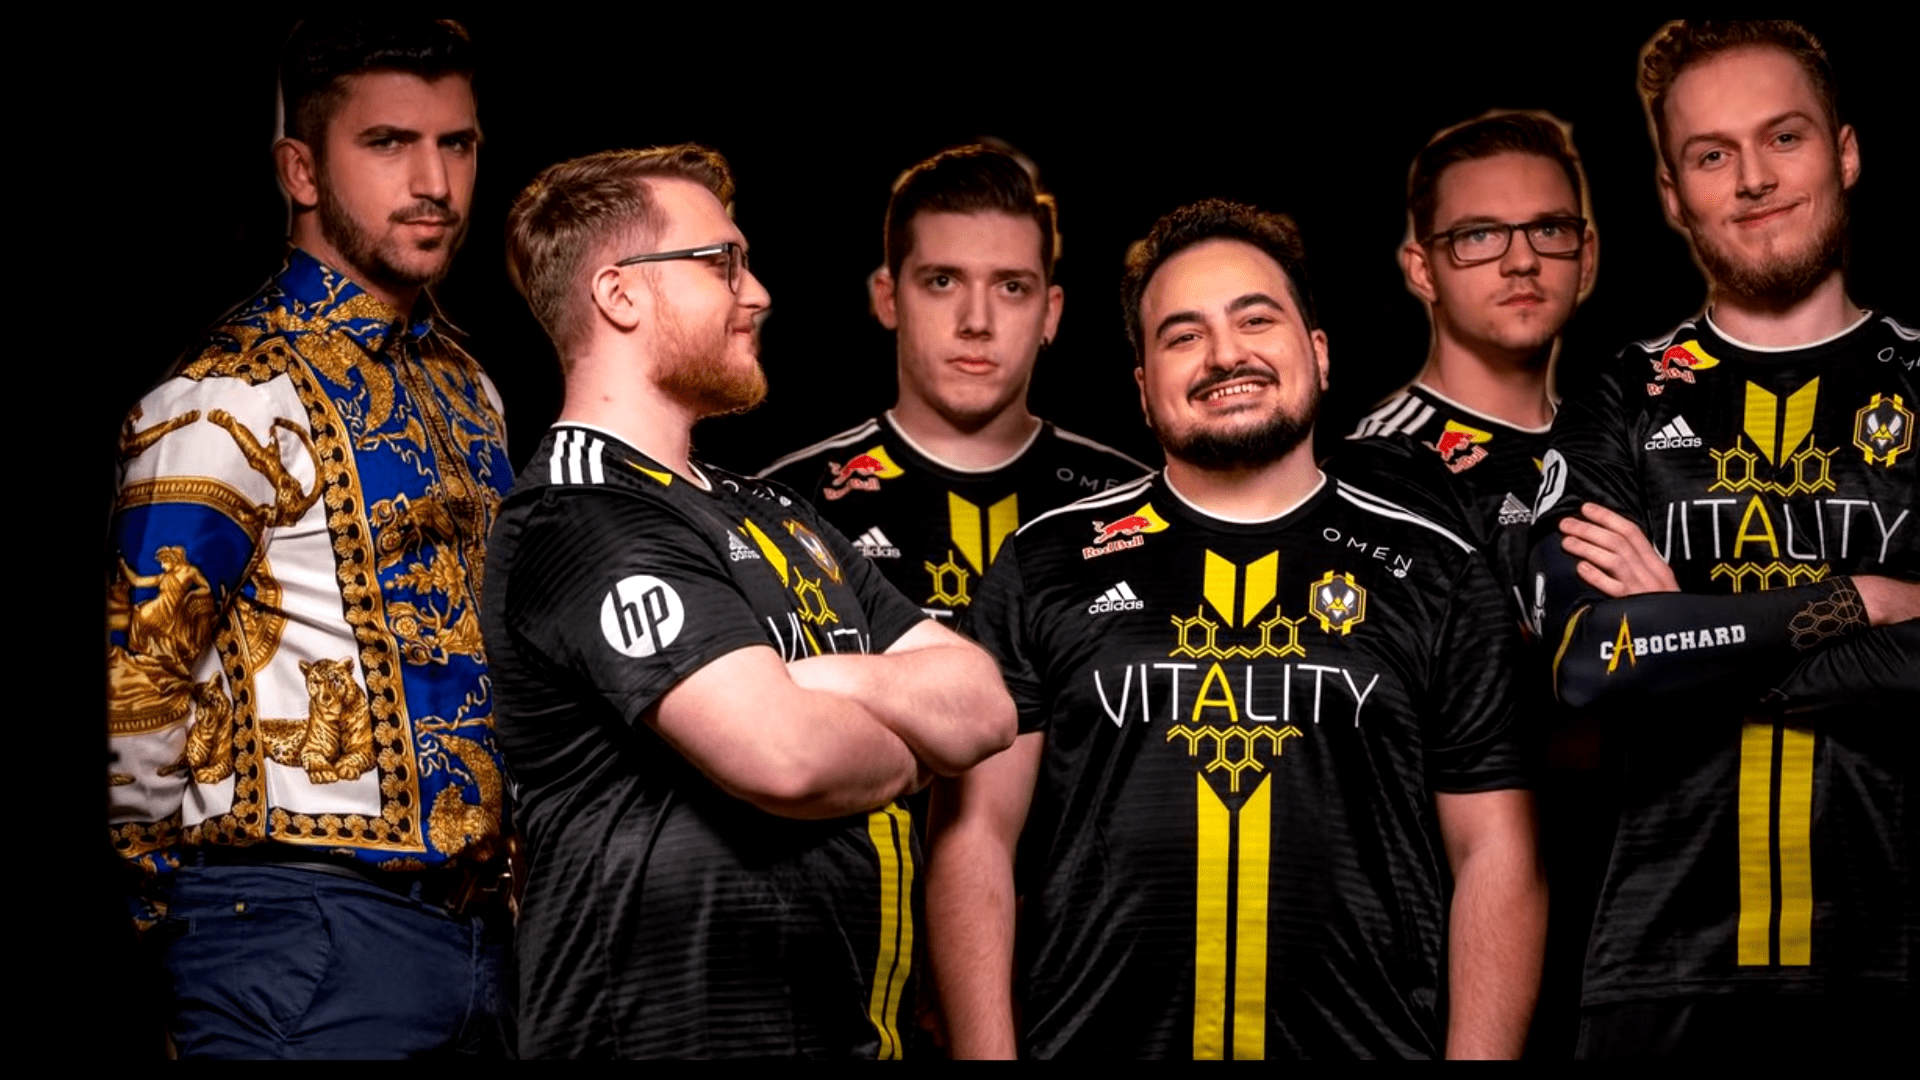 Team Vitality Releases Roster Announcement With Surprise Comics Video For LEC 2020